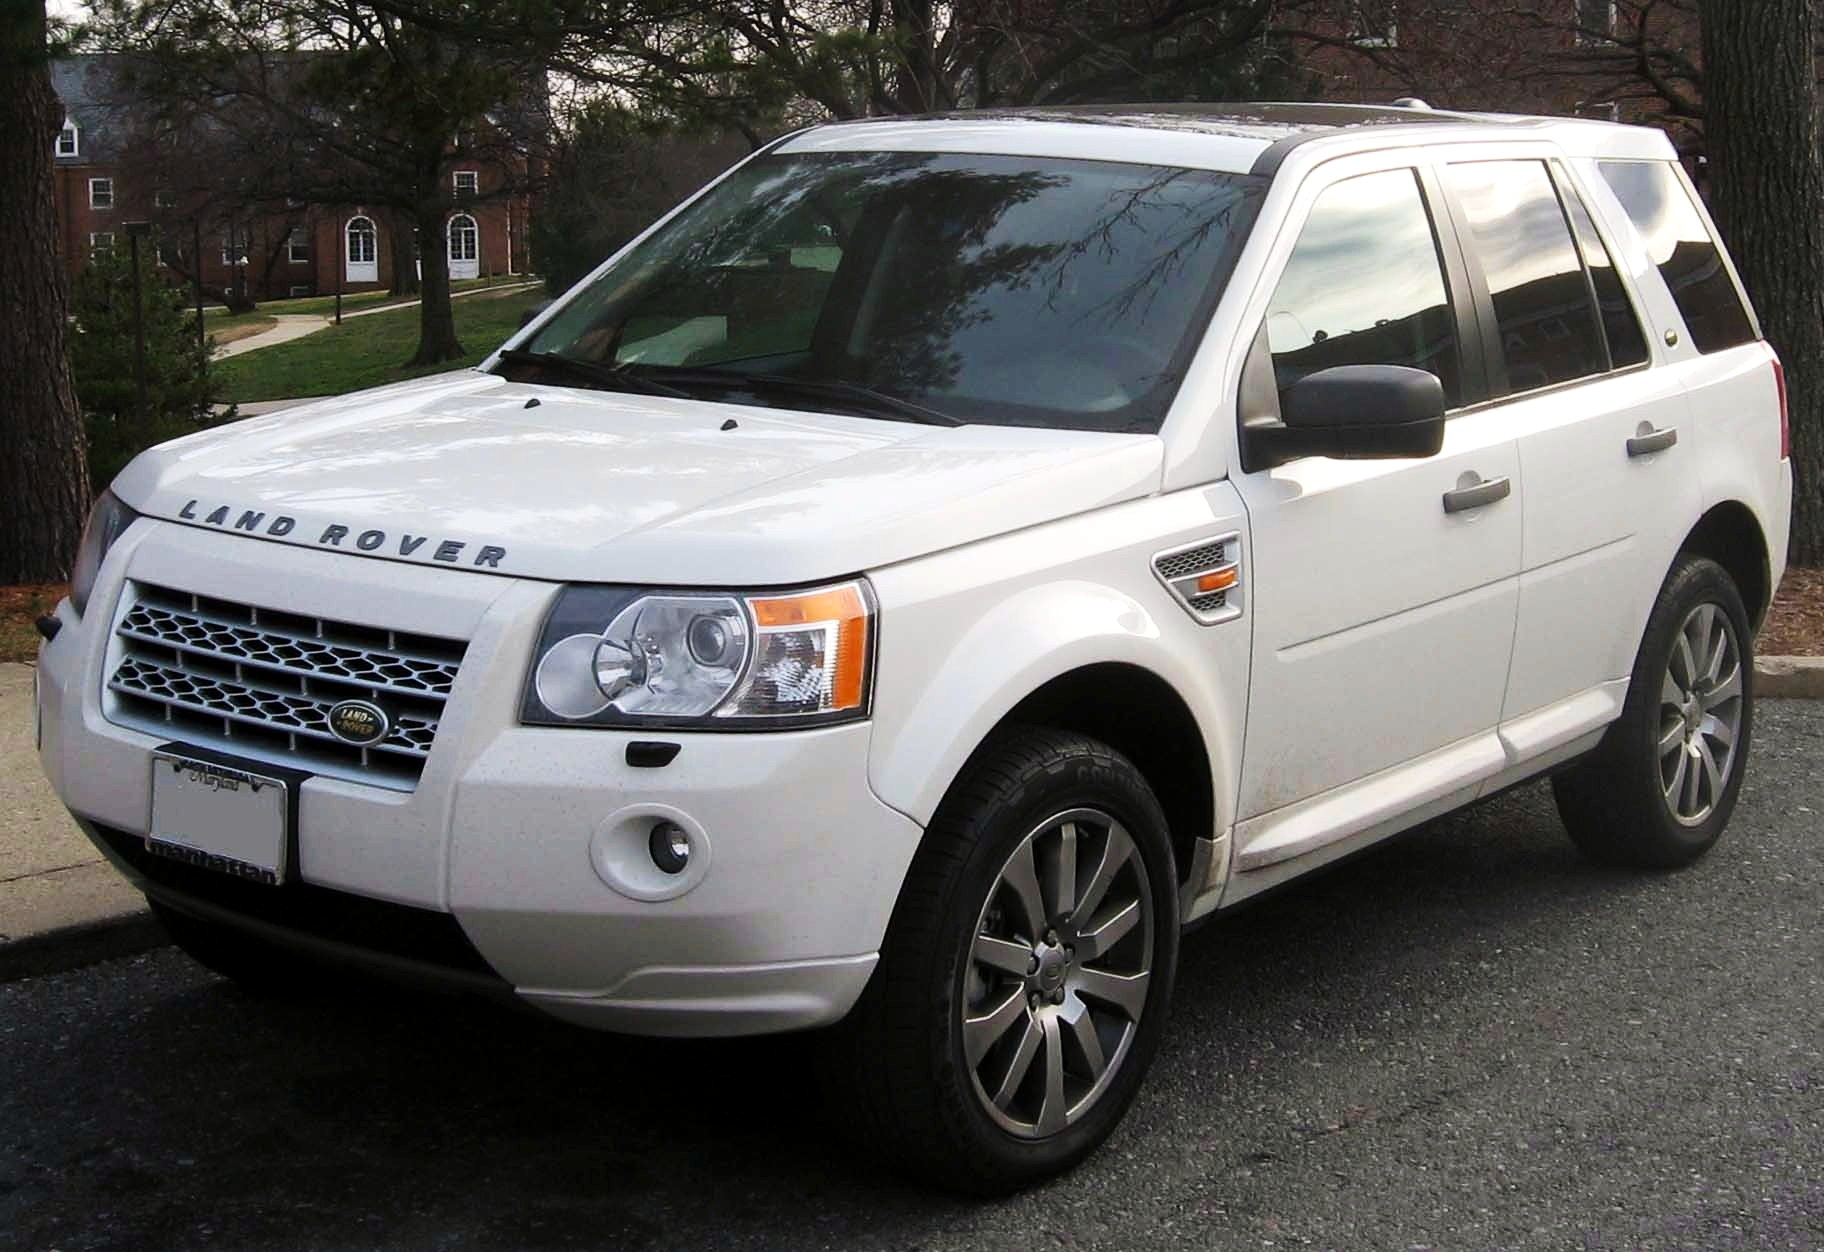 2005 Land Rover Freelander  Information and photos  ZombieDrive